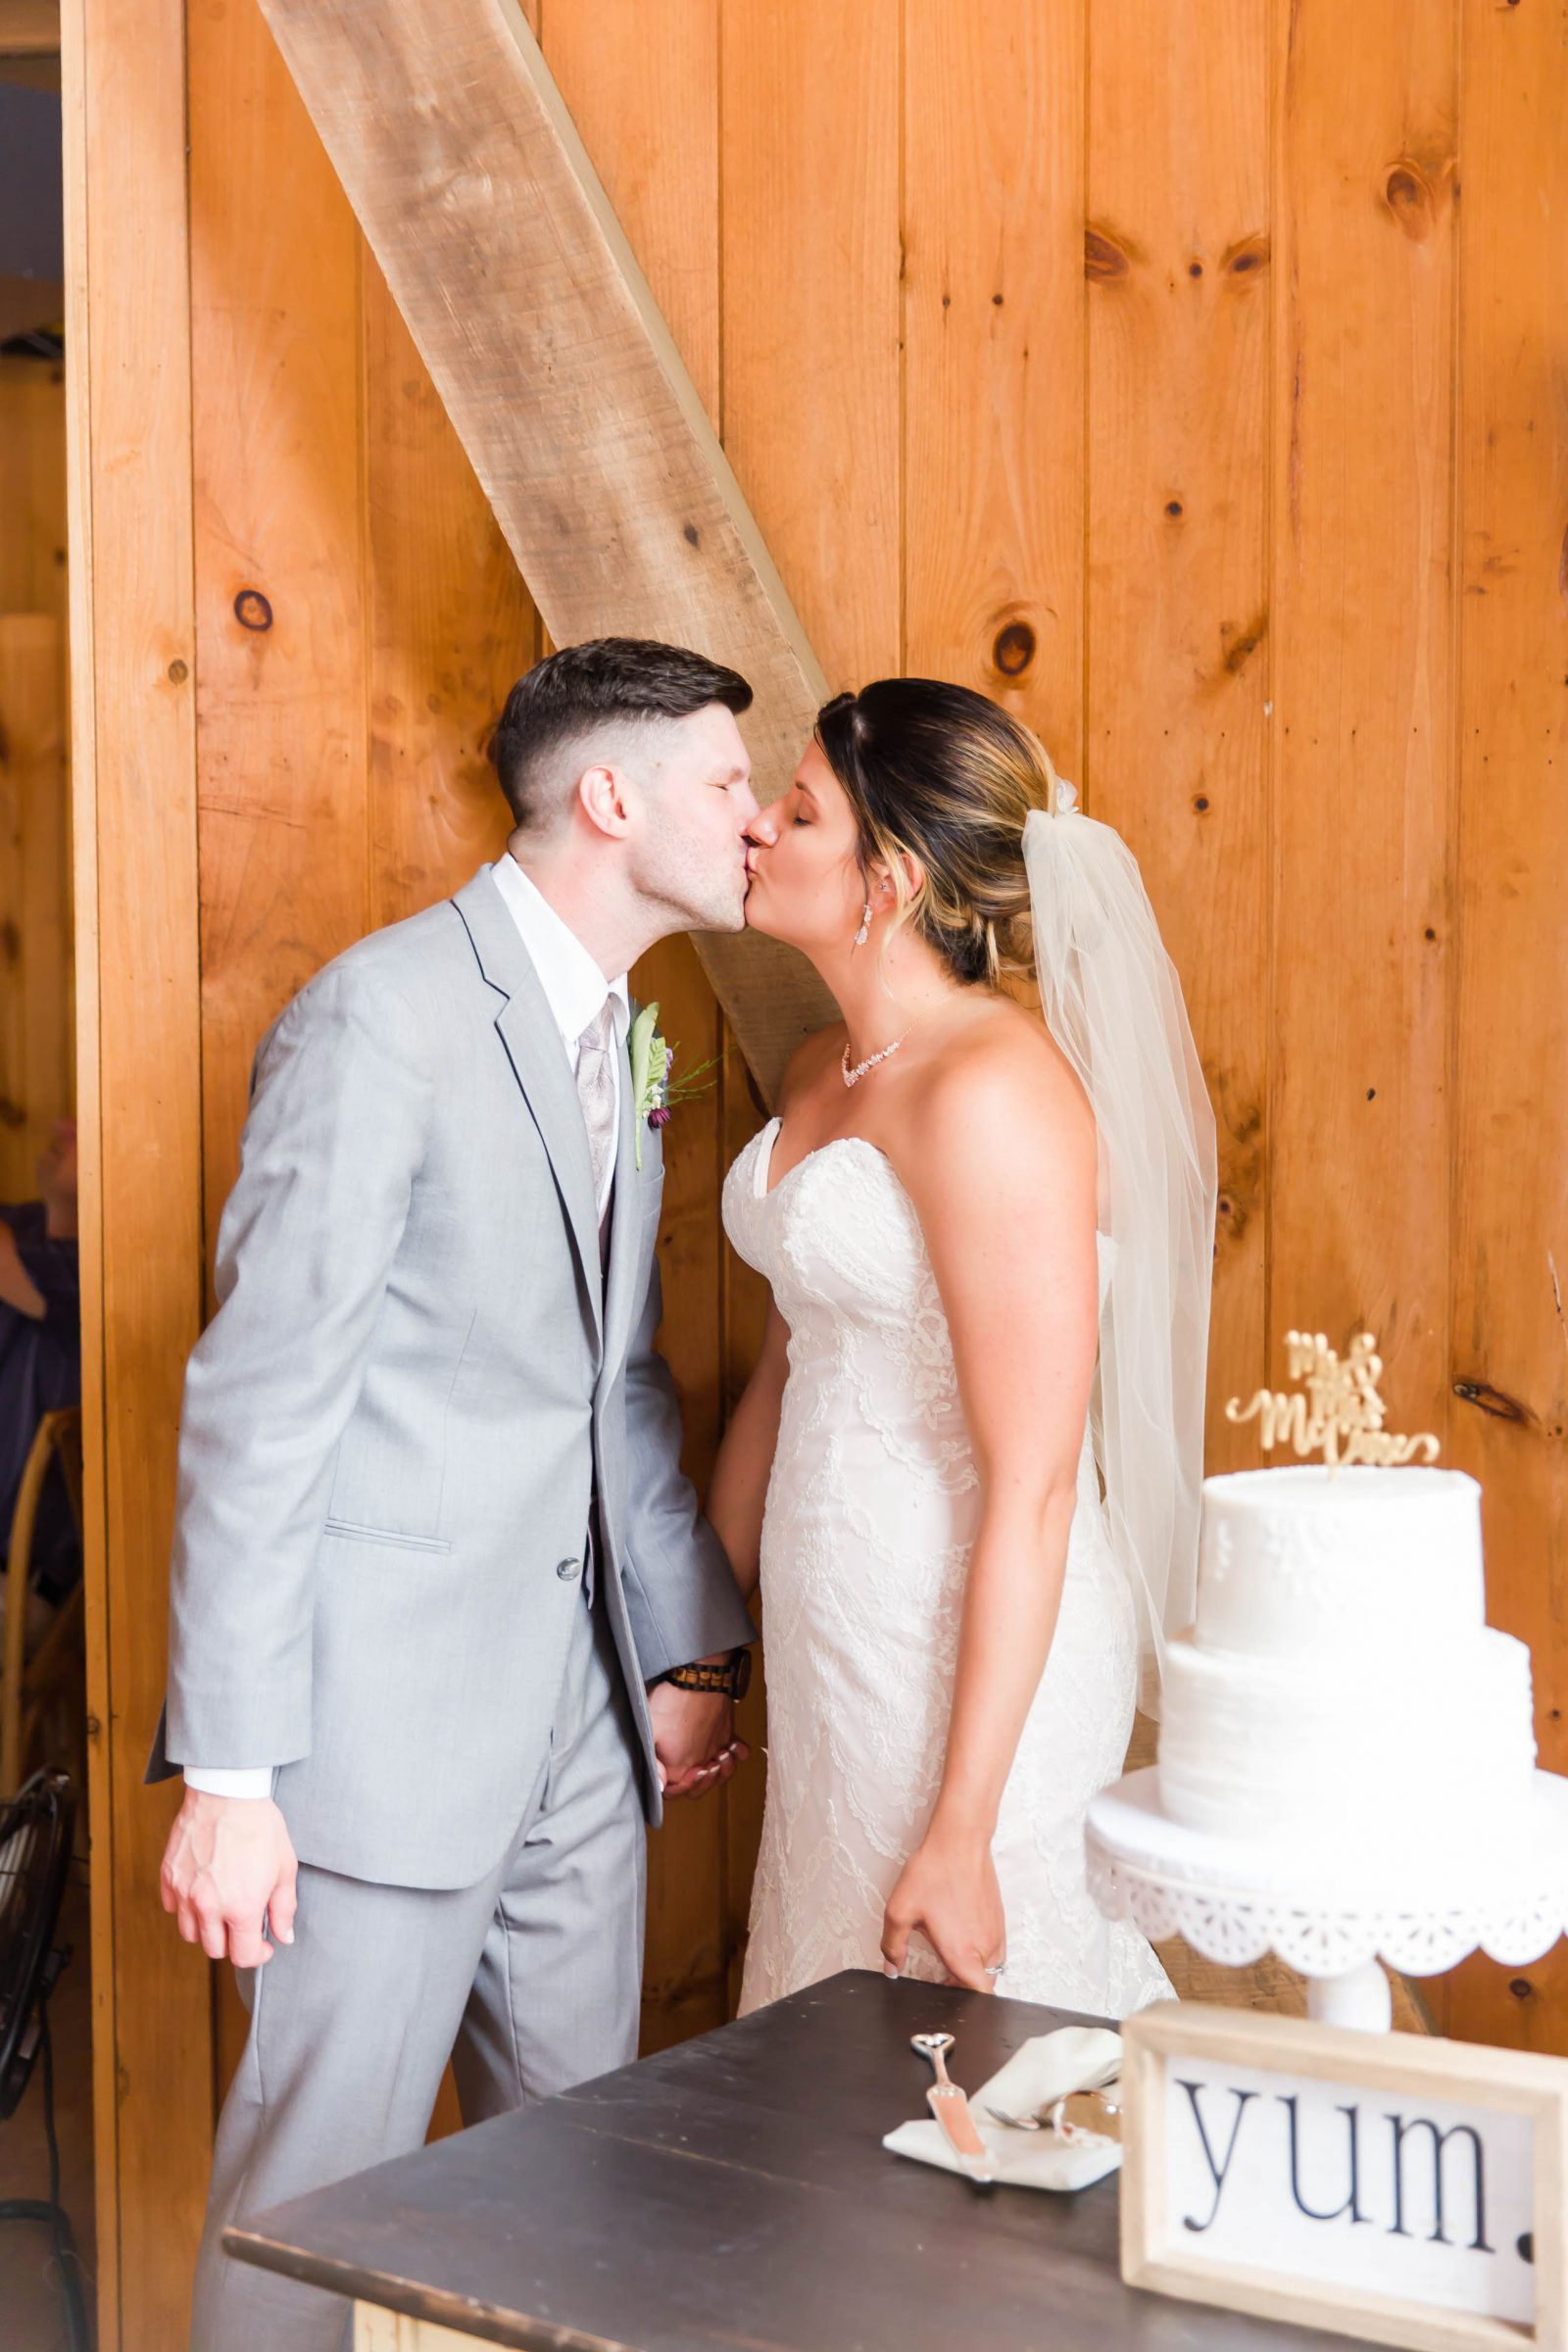 rivercrest-farm-summer-wedding-loren-jackson-photography-98